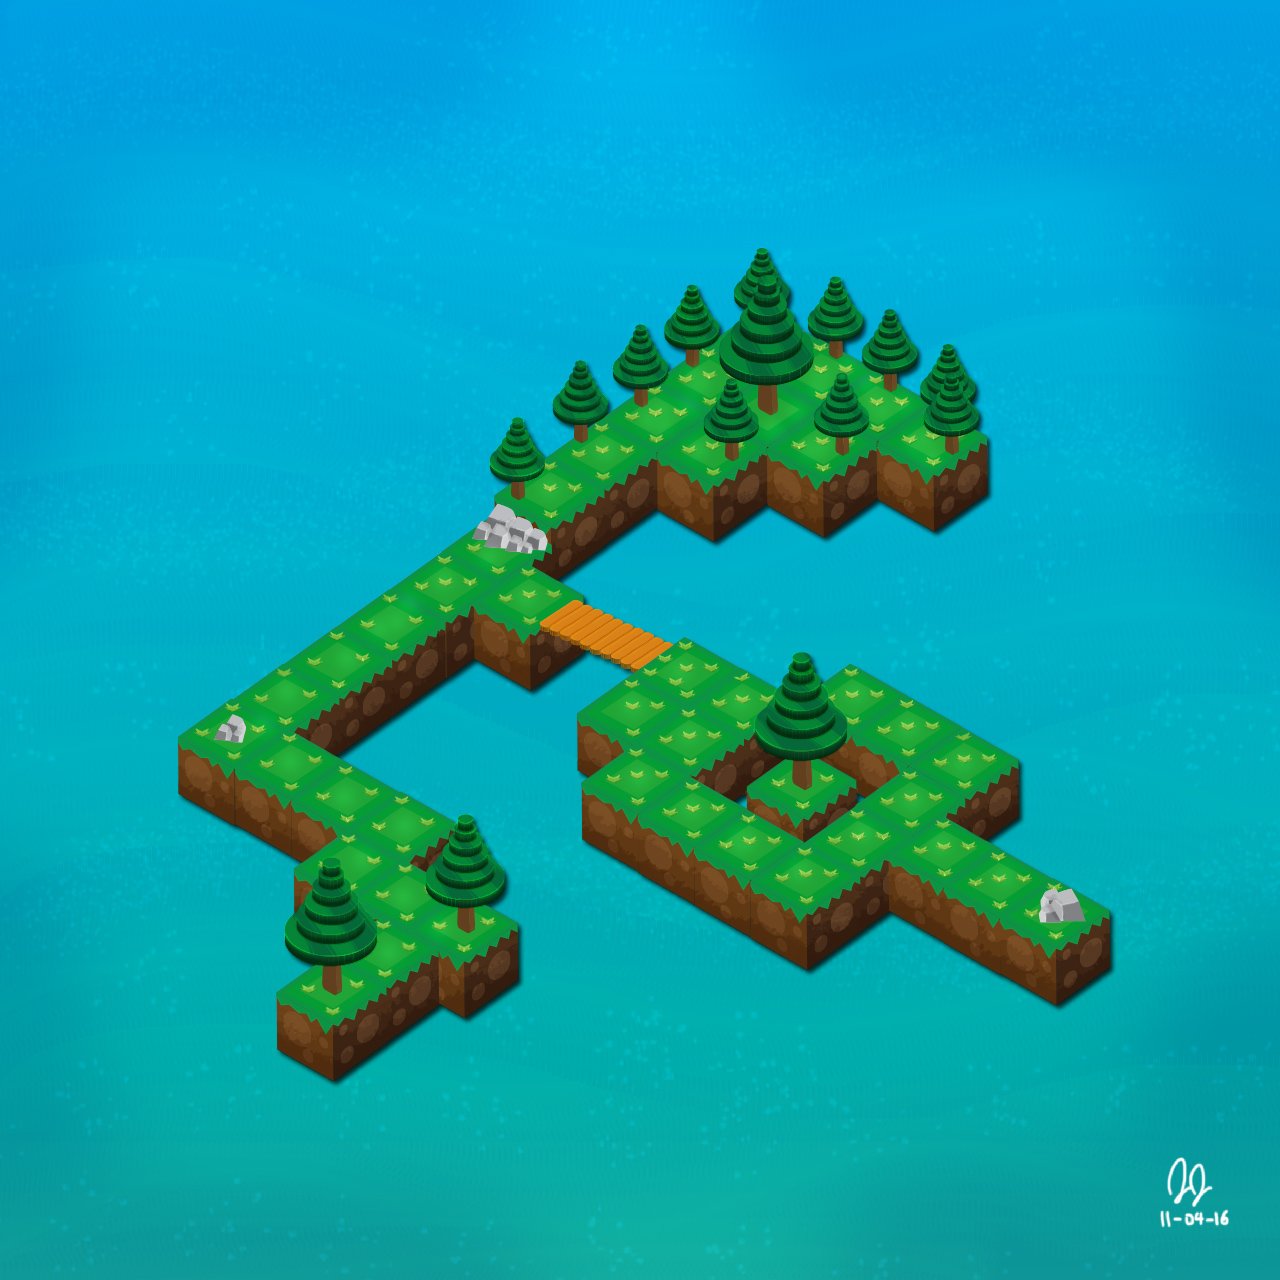 Isometric Art